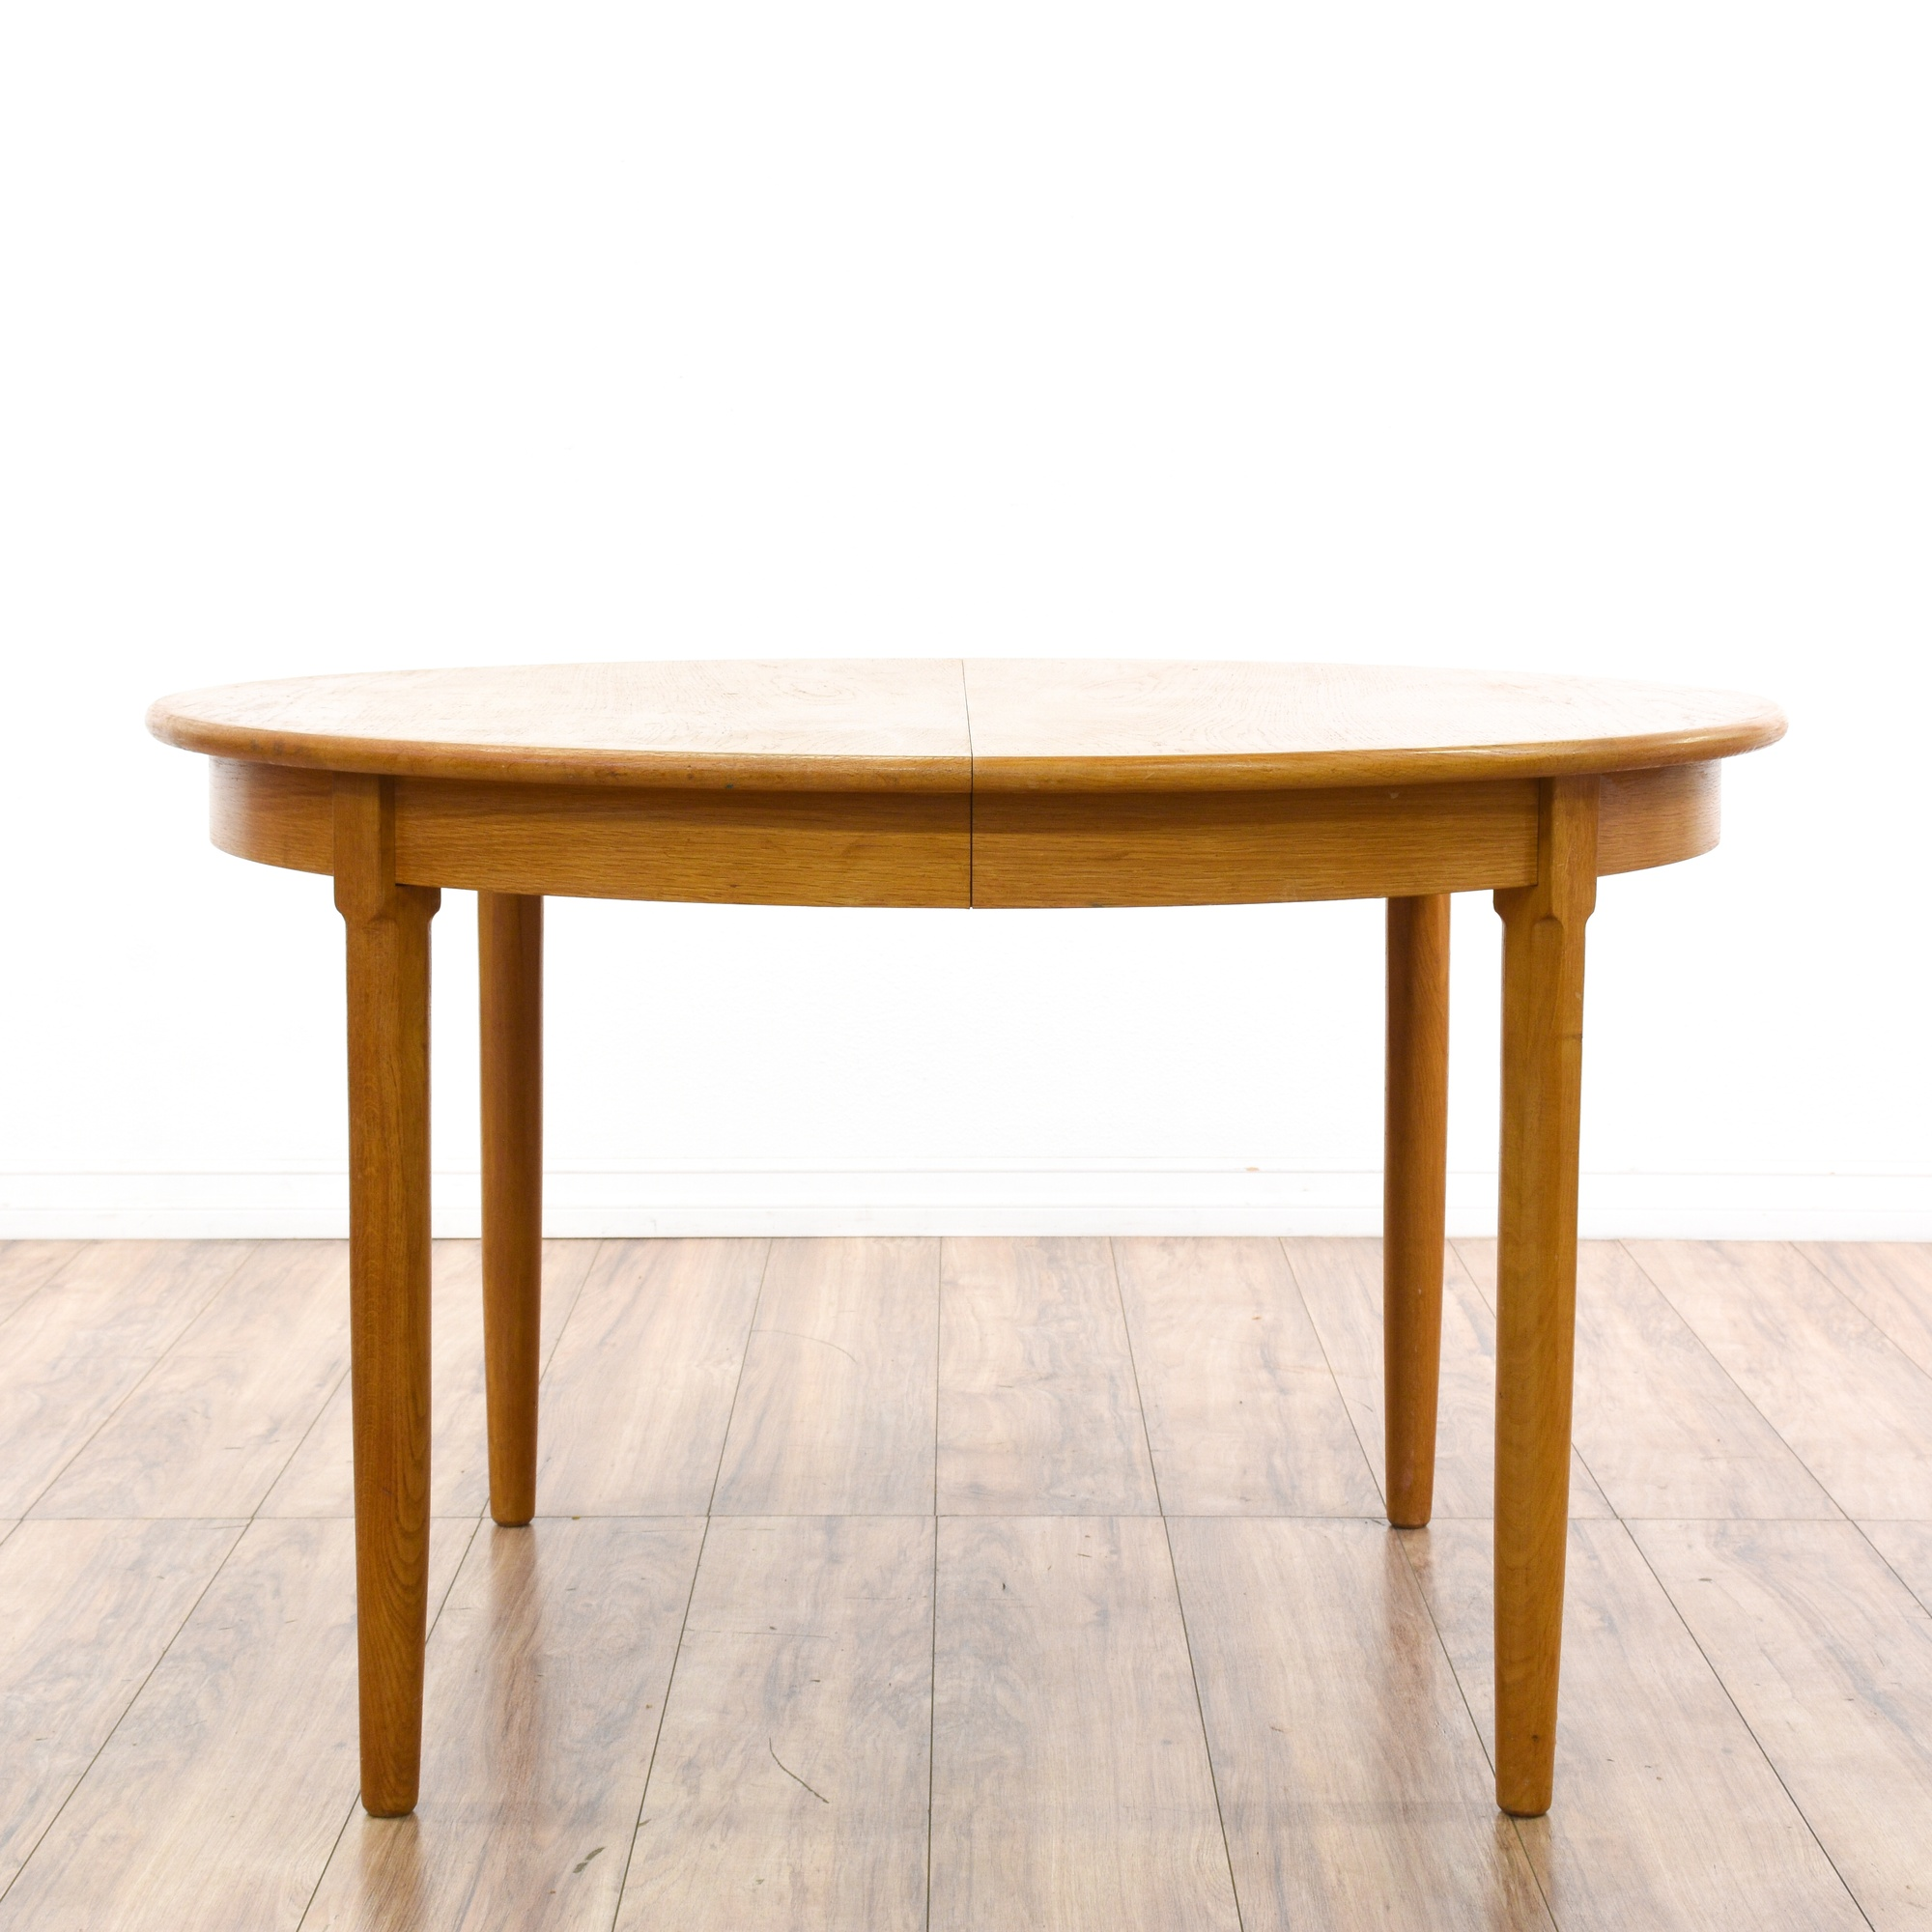 Mid century modern round dining table w 2 leaves for Mid century round dining table